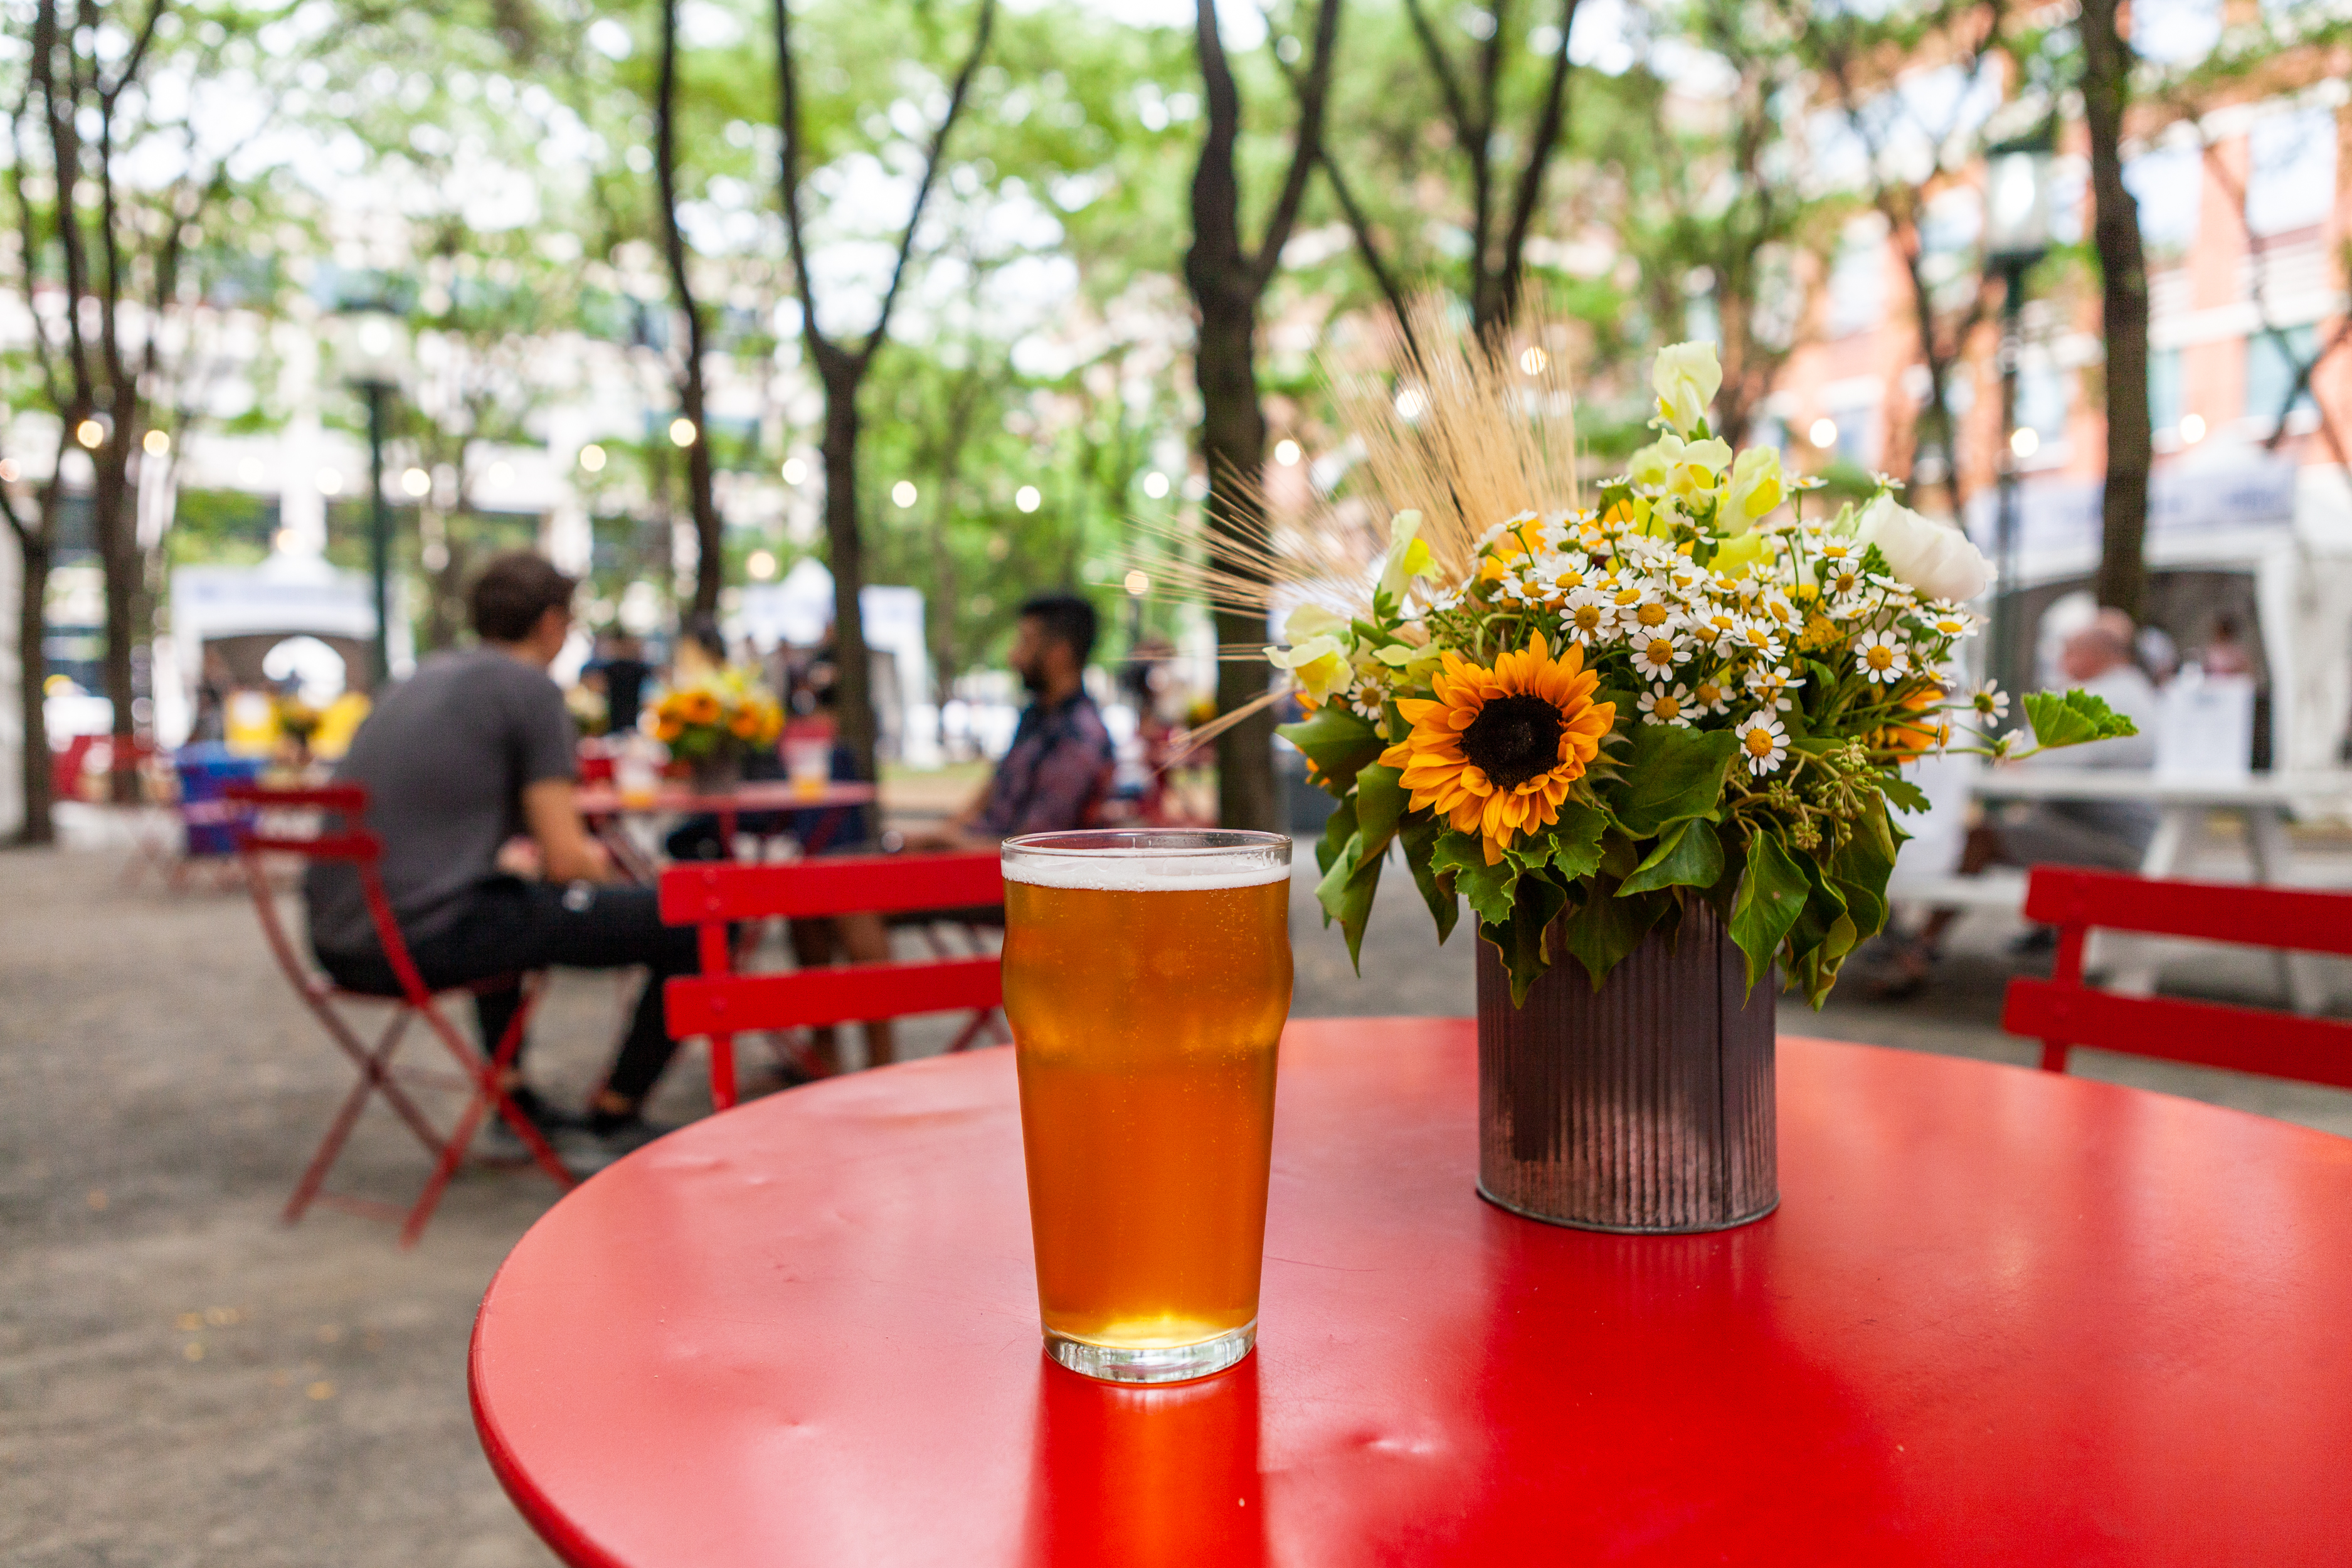 A beer sitting on a table in Brooklyn Commons Park